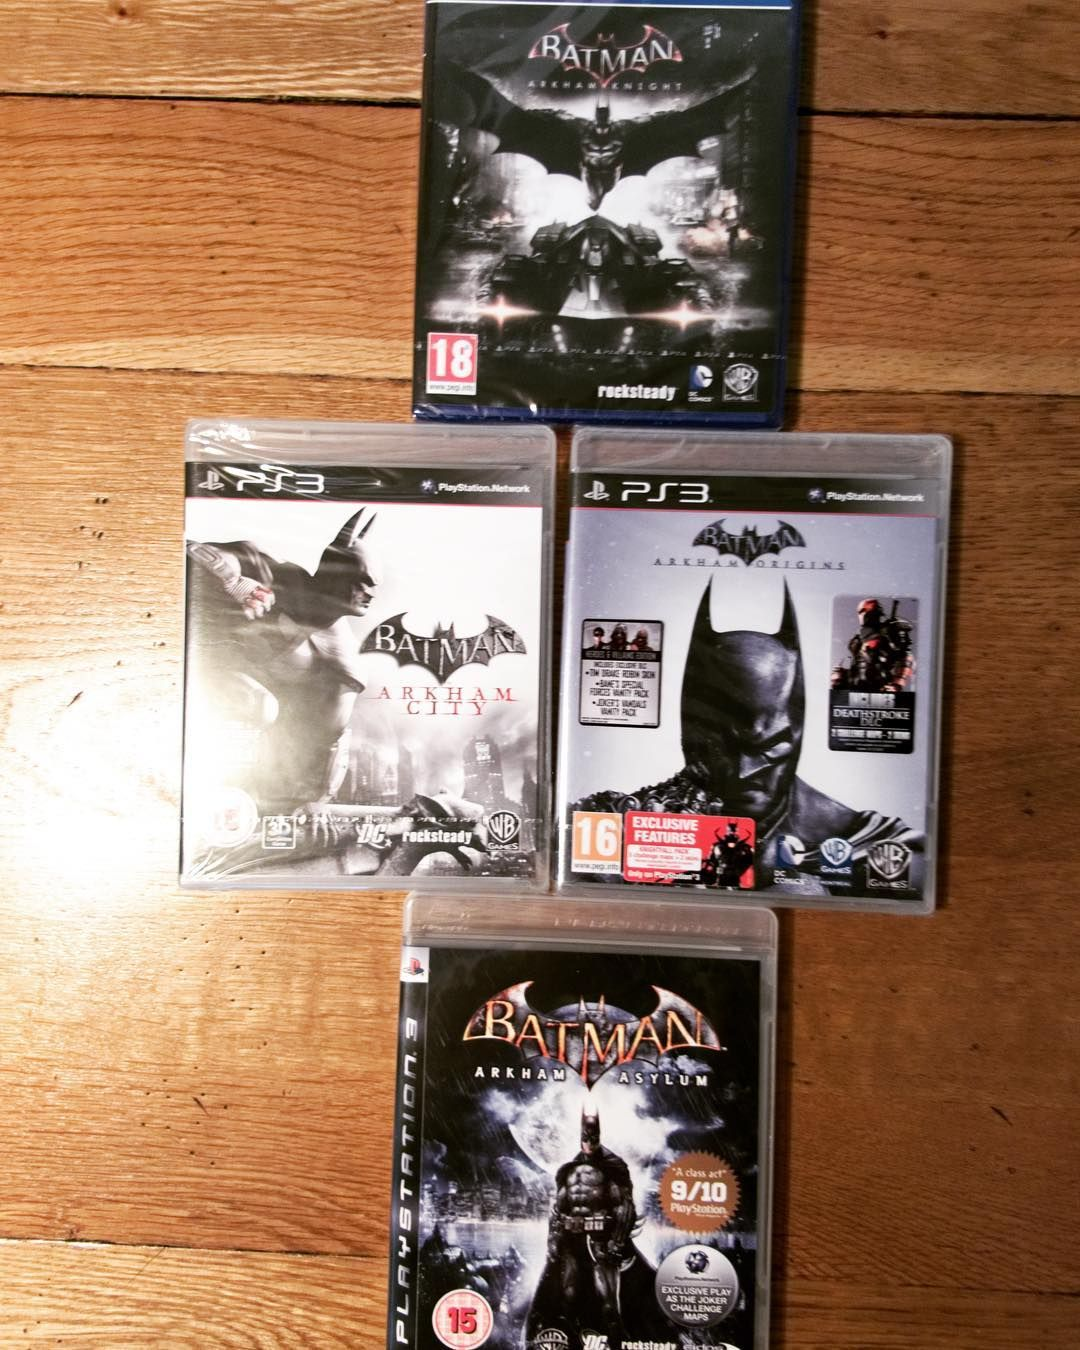 Having Completed Batman Arkham Asylum On Ps3 I Realised I Still